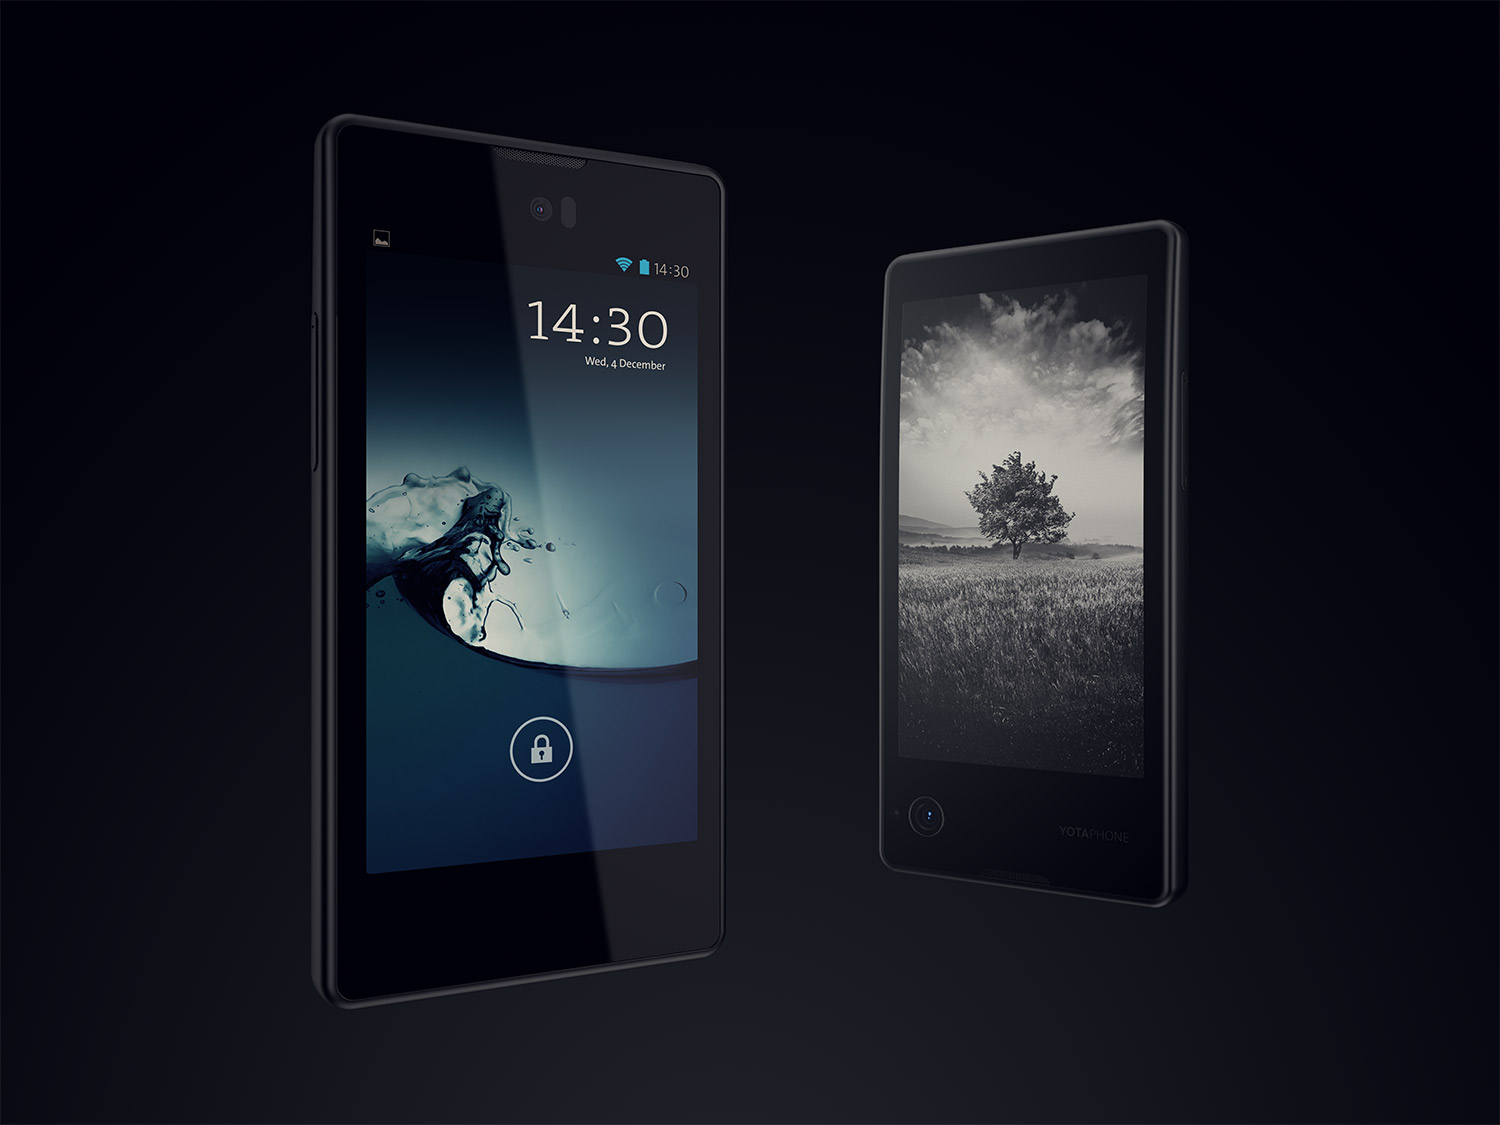 Jumbo Dubai & Flipkart launches YotaPhone in India: World's first dual-screen smartphone